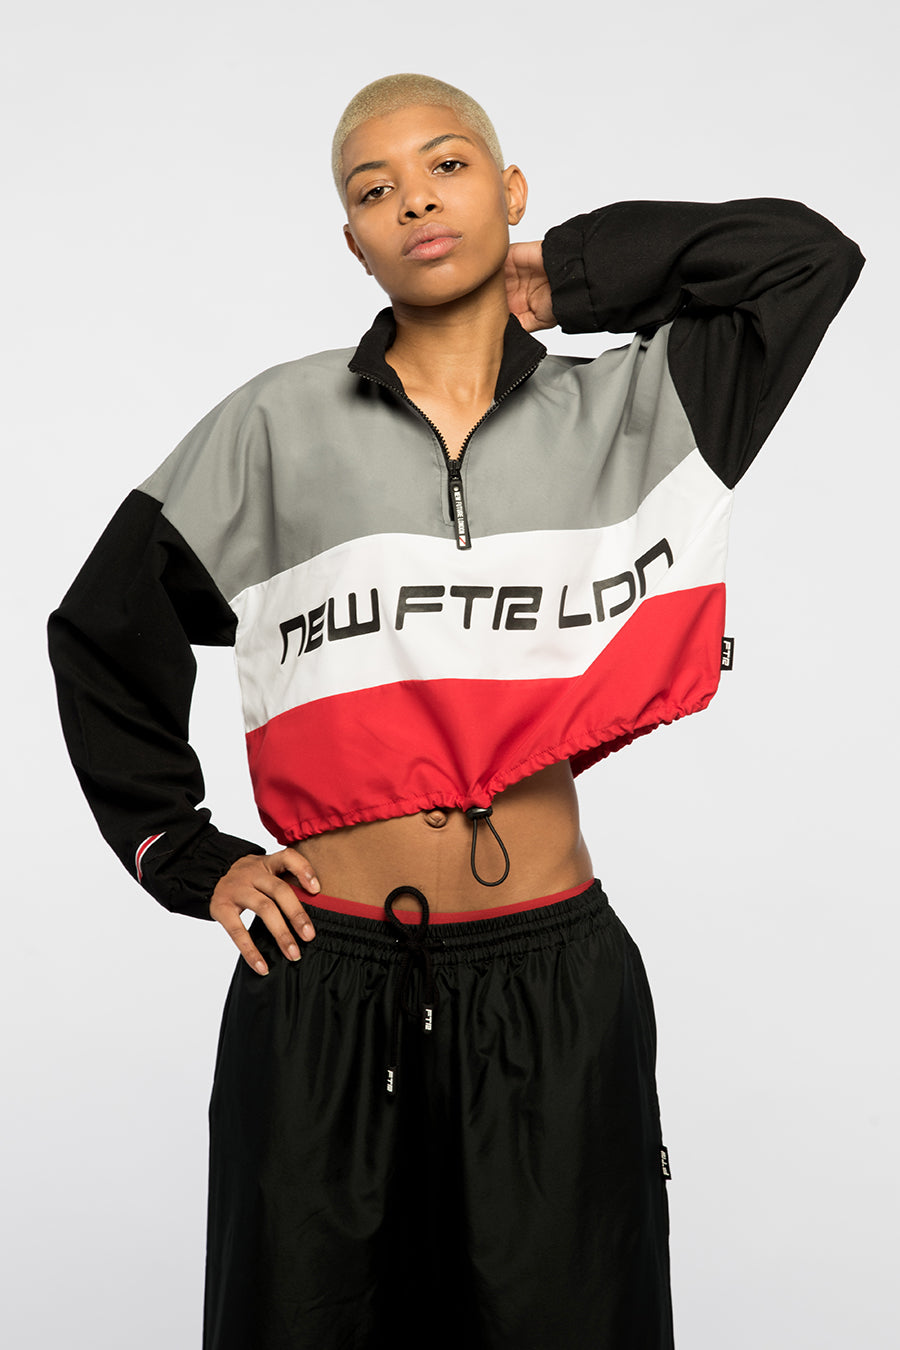 new_future_london_cropped_pullover_grey_red_1-1.jpg